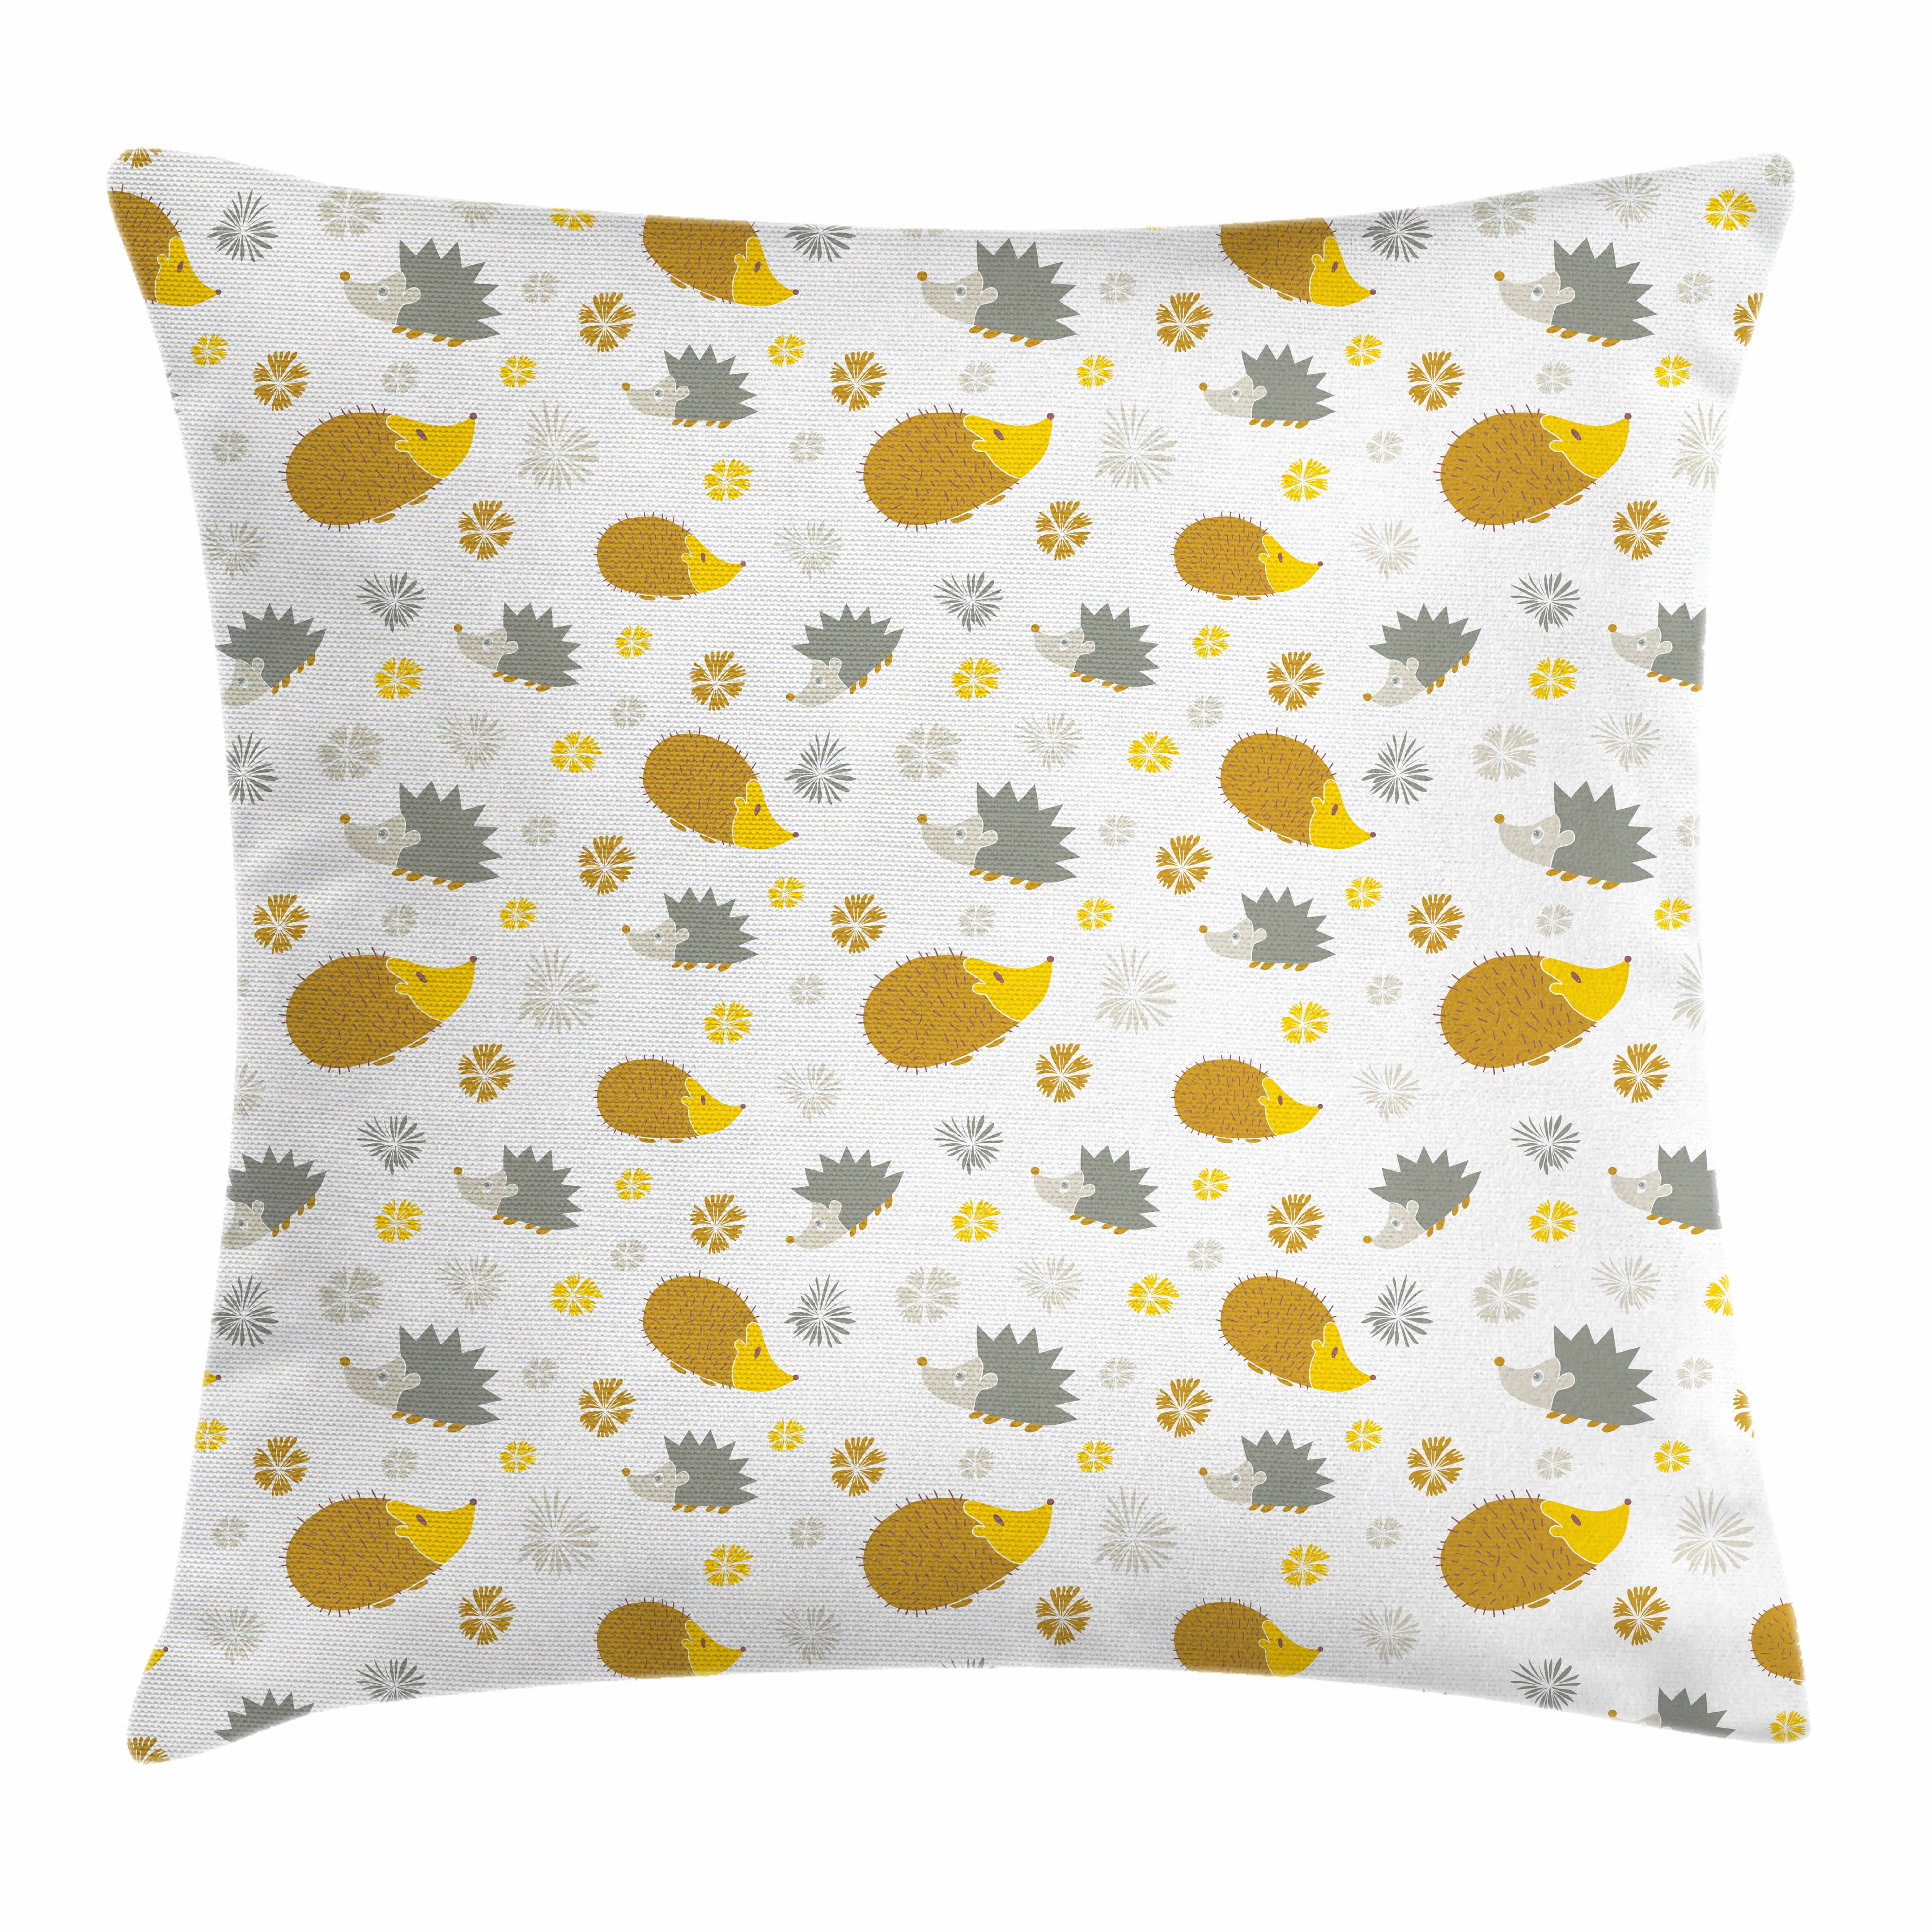 Hedgehog Throw Pillow Cushion Cover, Autumn in Woods Theme Different Wildlife Mascots with Little Flowers, Decorative Square Accent Pillow Case, 16 X 16 Inches, Goldenrod Grey Yellow, by Ambesonne